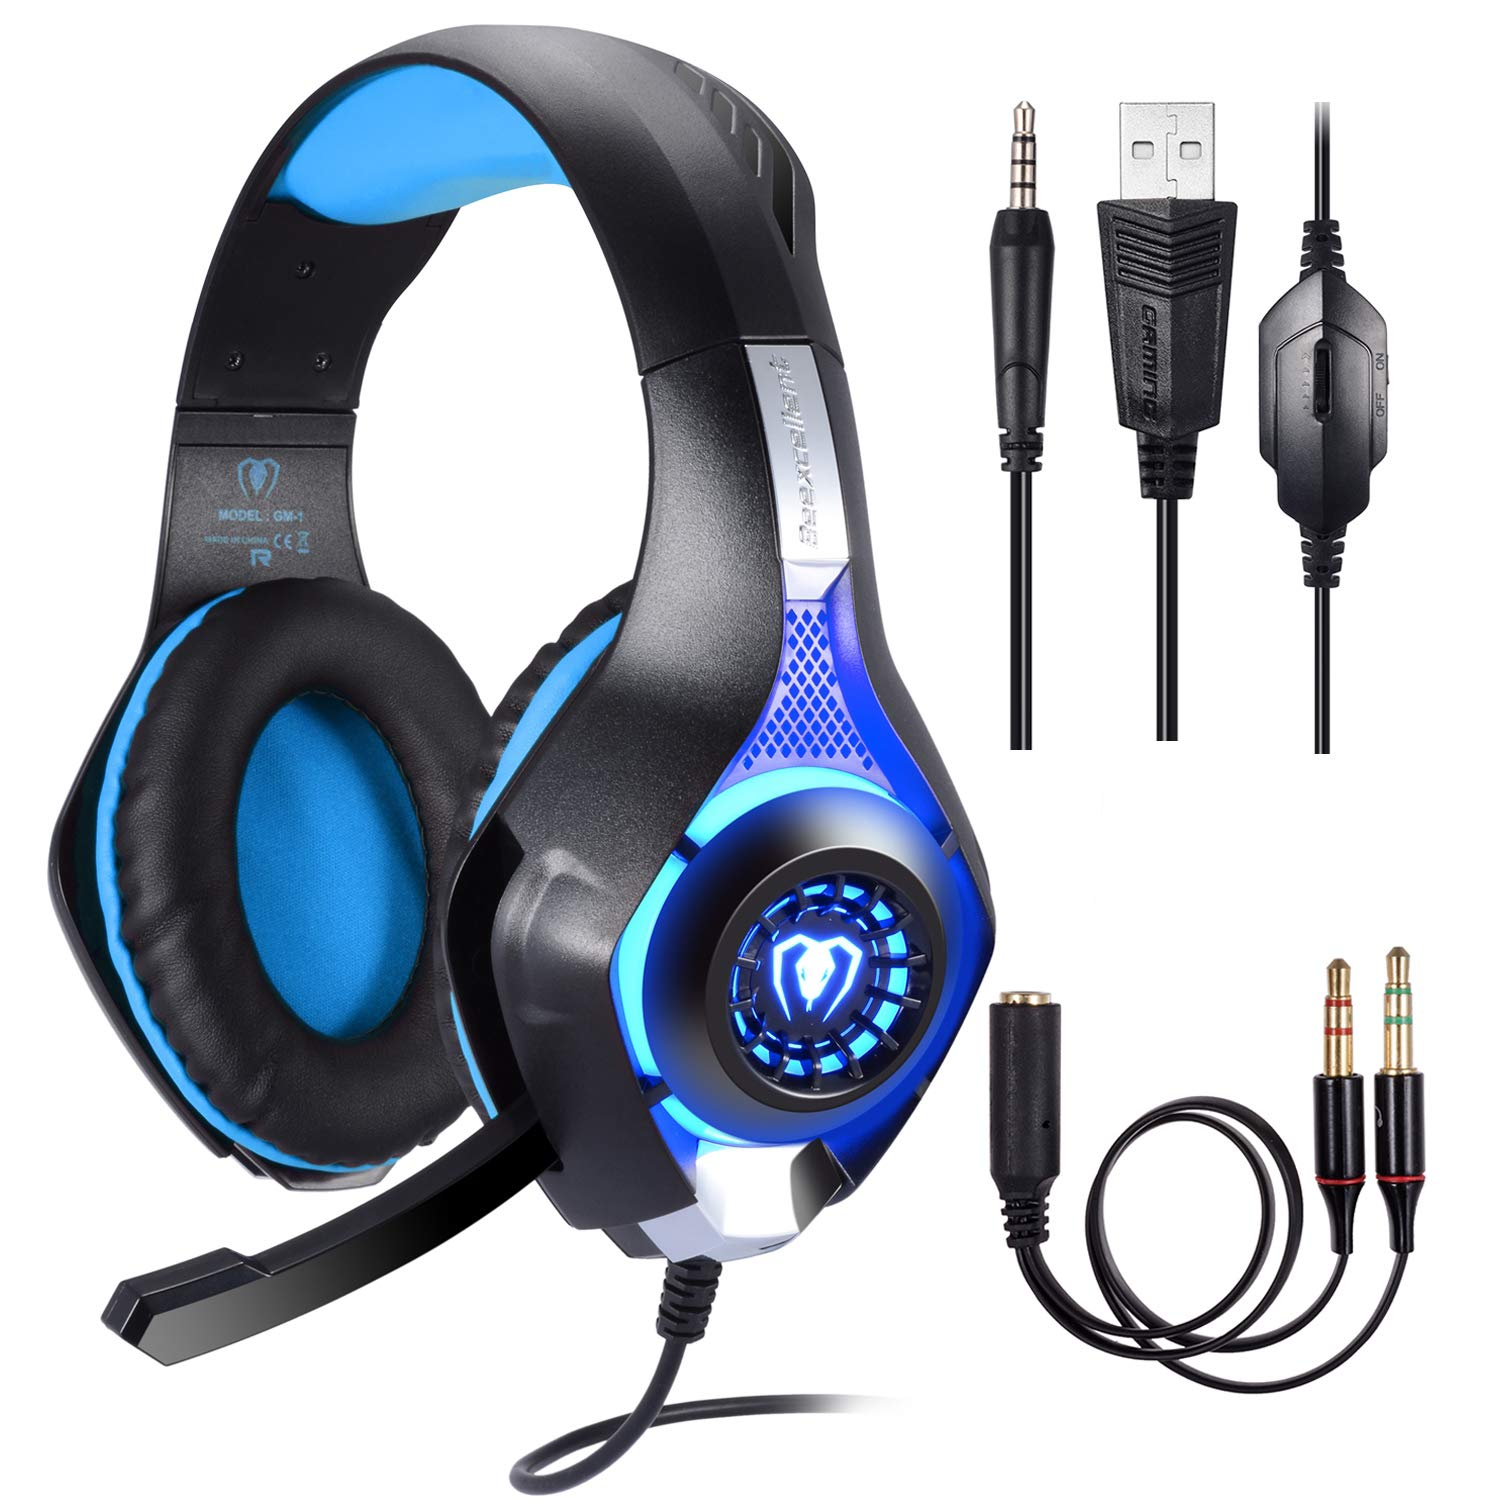 BlueFire Professional 3.5mm PS4 Gaming Headset Headphone with Mic and LED Lights for Playstation 4, Xbox one,Laptop, Computer Blue